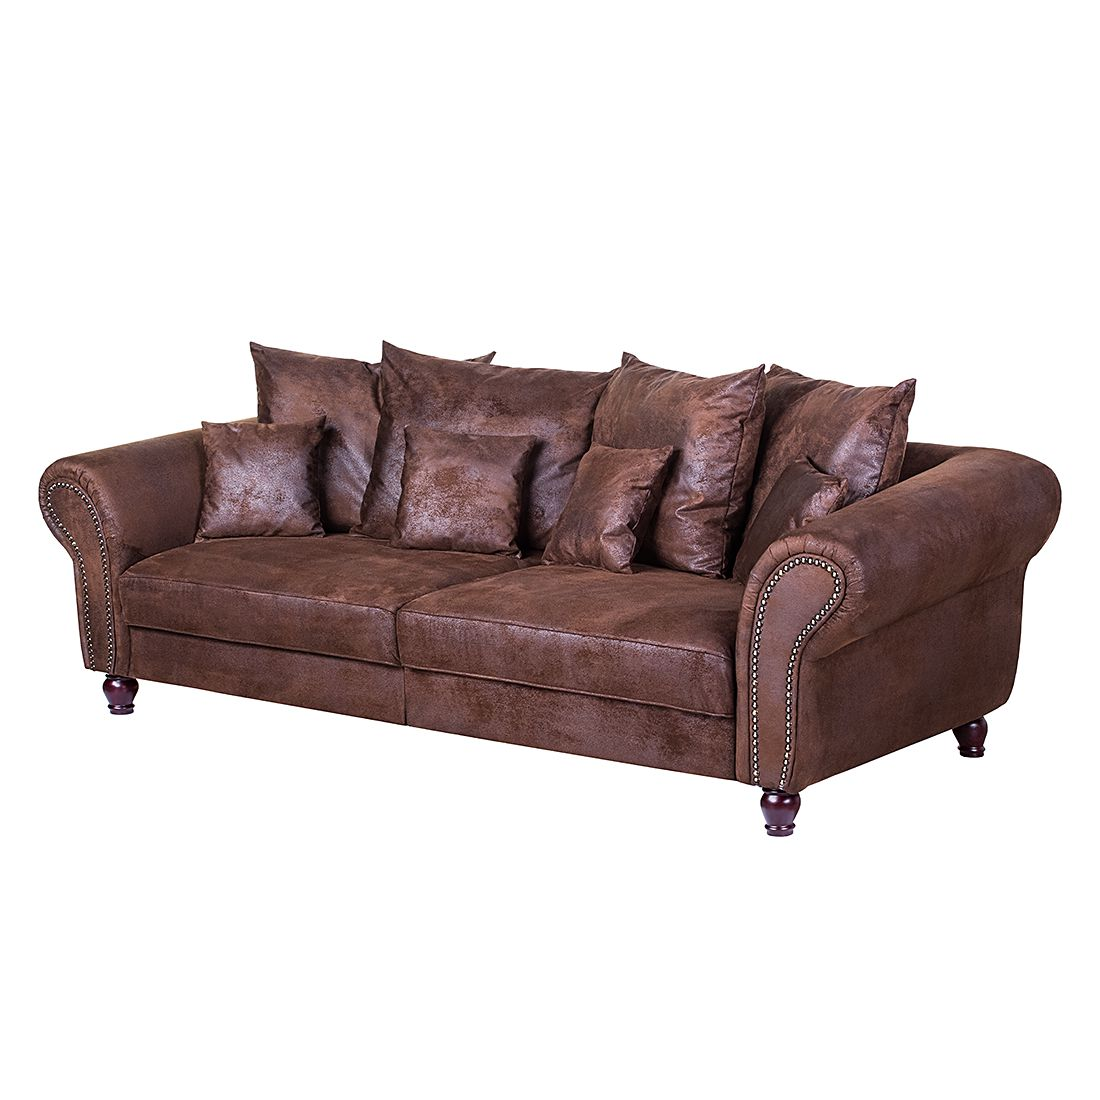 Big Sofa Goodwick Big Sofa Antiklederoptik